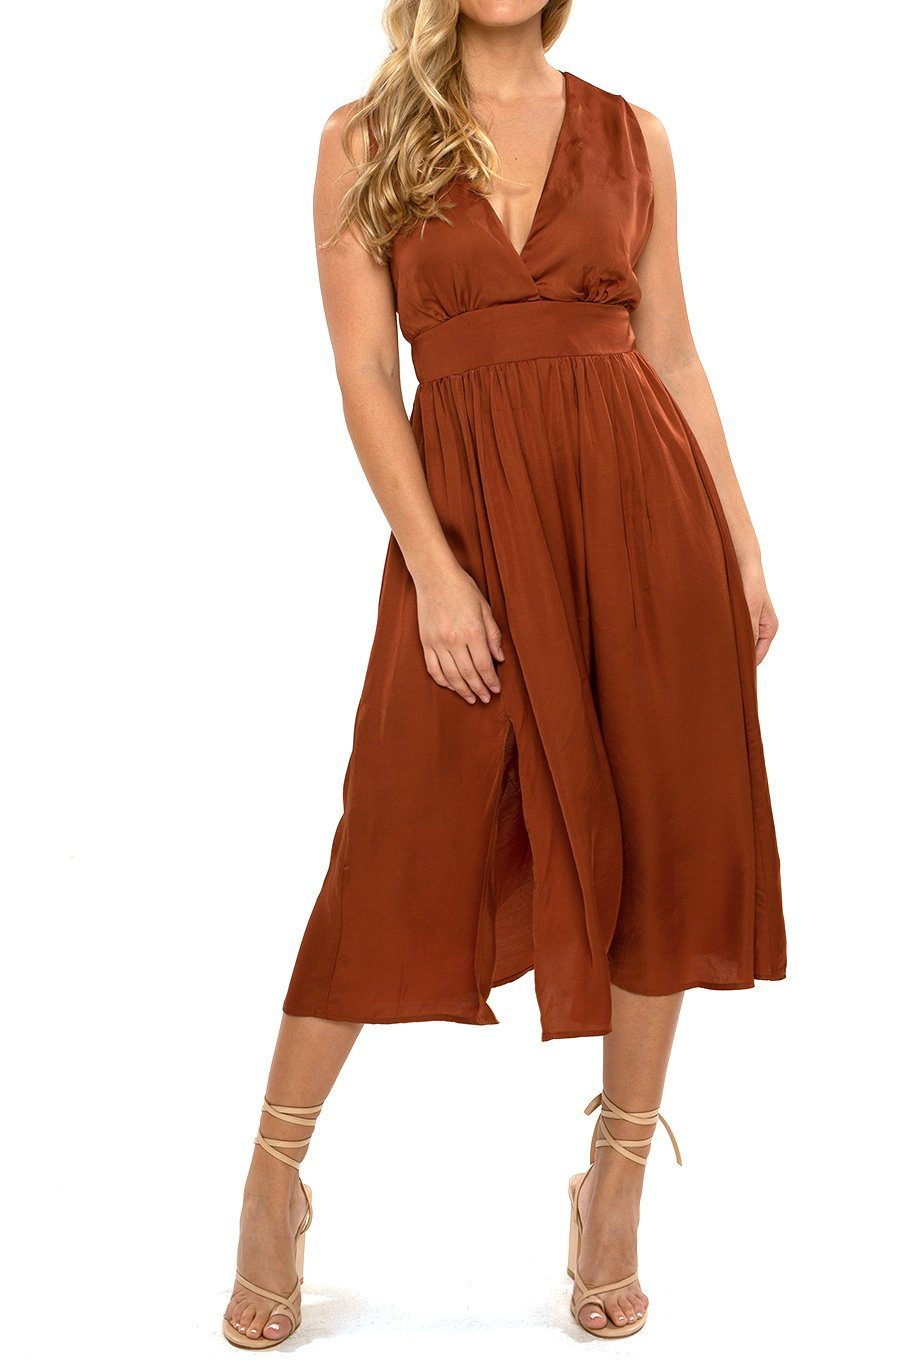 Magnolia Midi Dress - Satin Rust